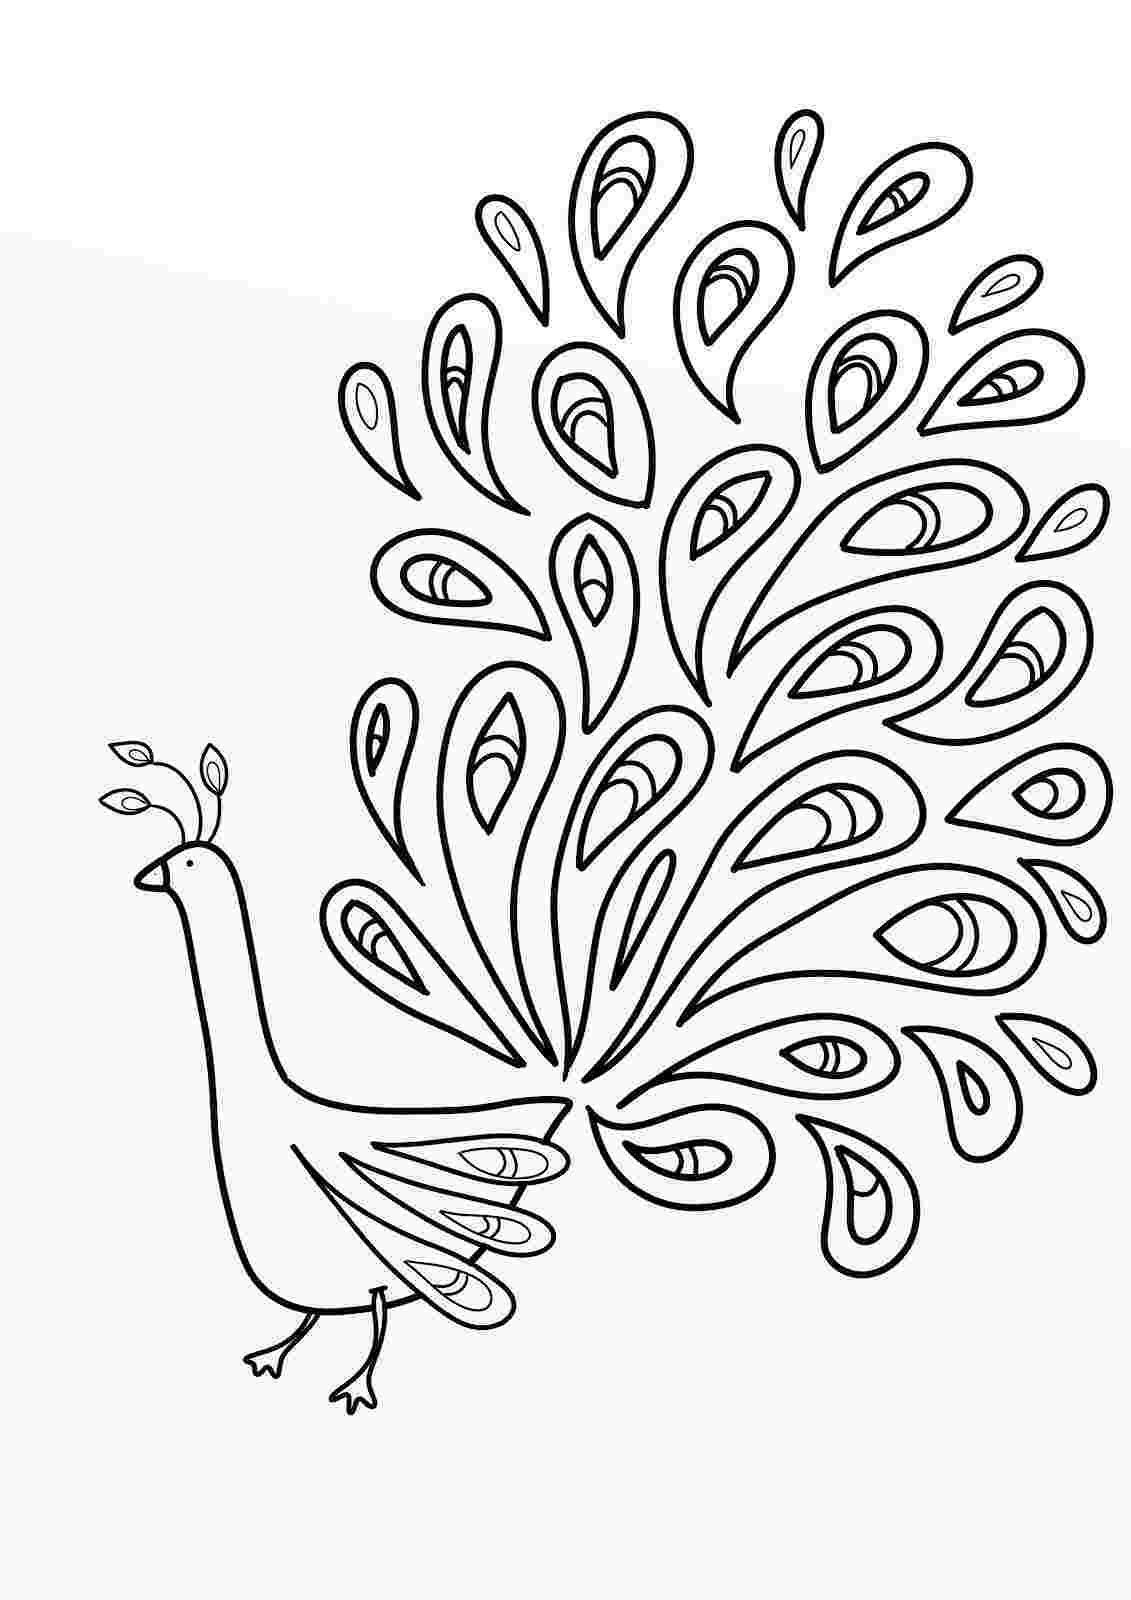 picture of peacock to color printable peacock coloring pages for kids cool2bkids picture to color of peacock